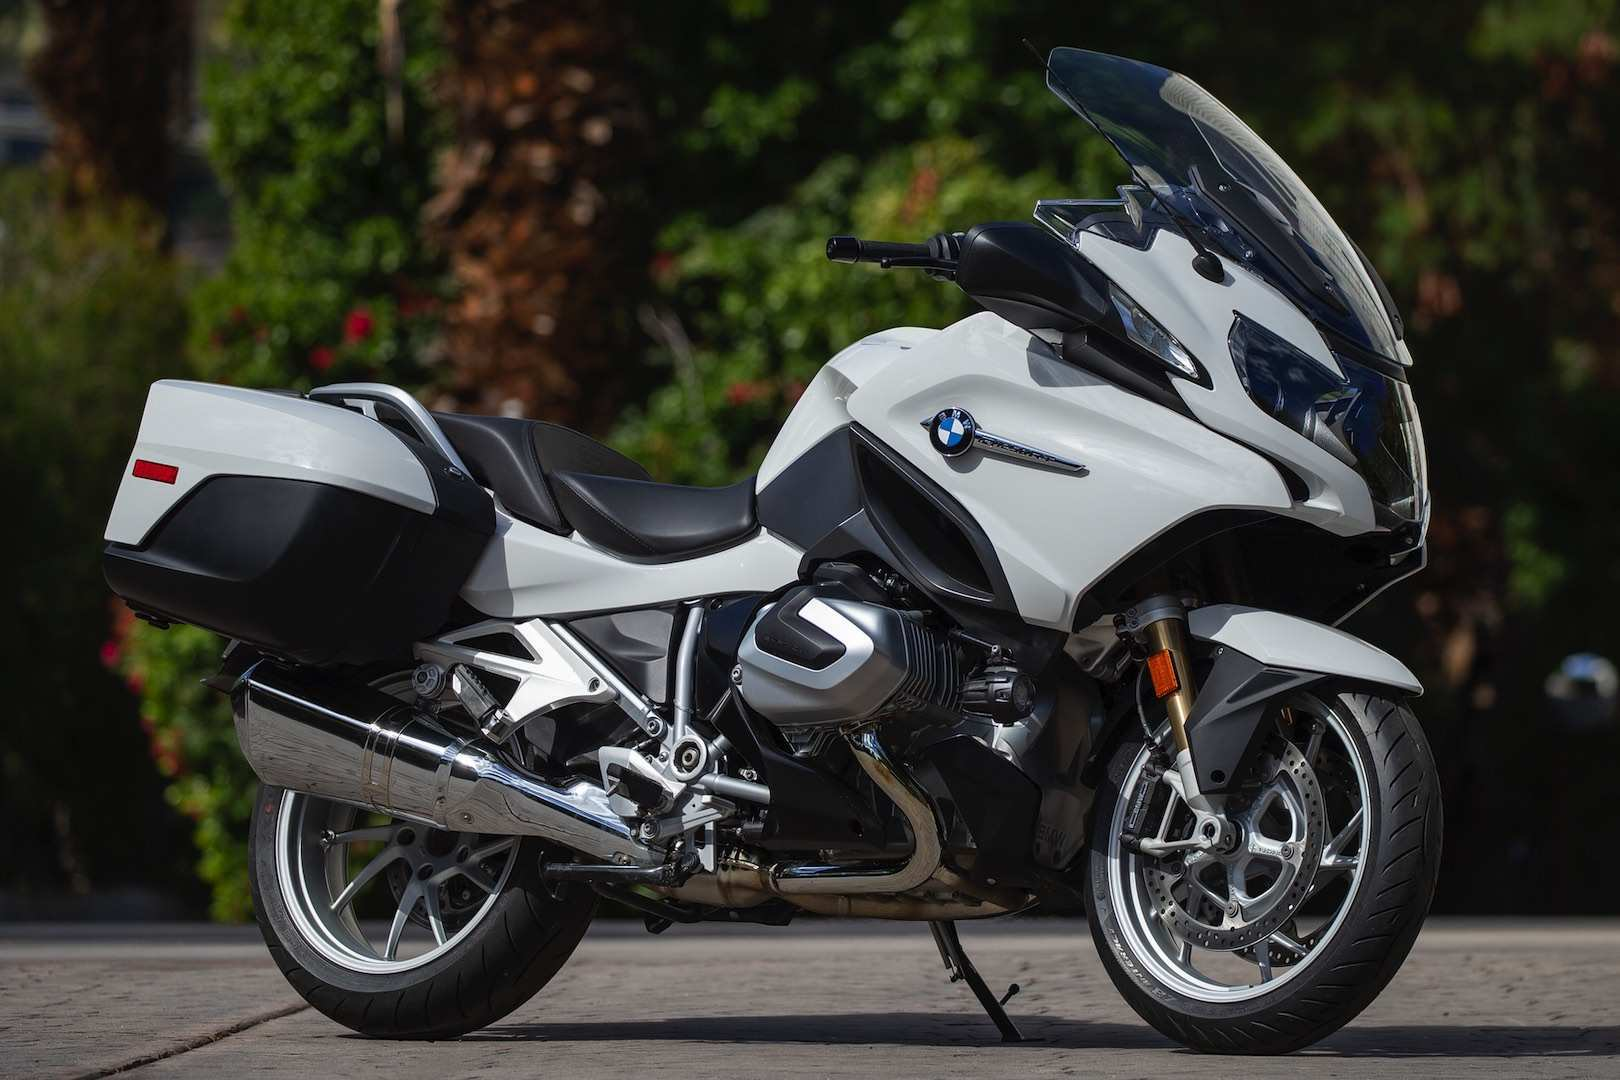 83 Great Best Bmw Boxer 2019 Exterior Reviews with Best Bmw Boxer 2019 Exterior